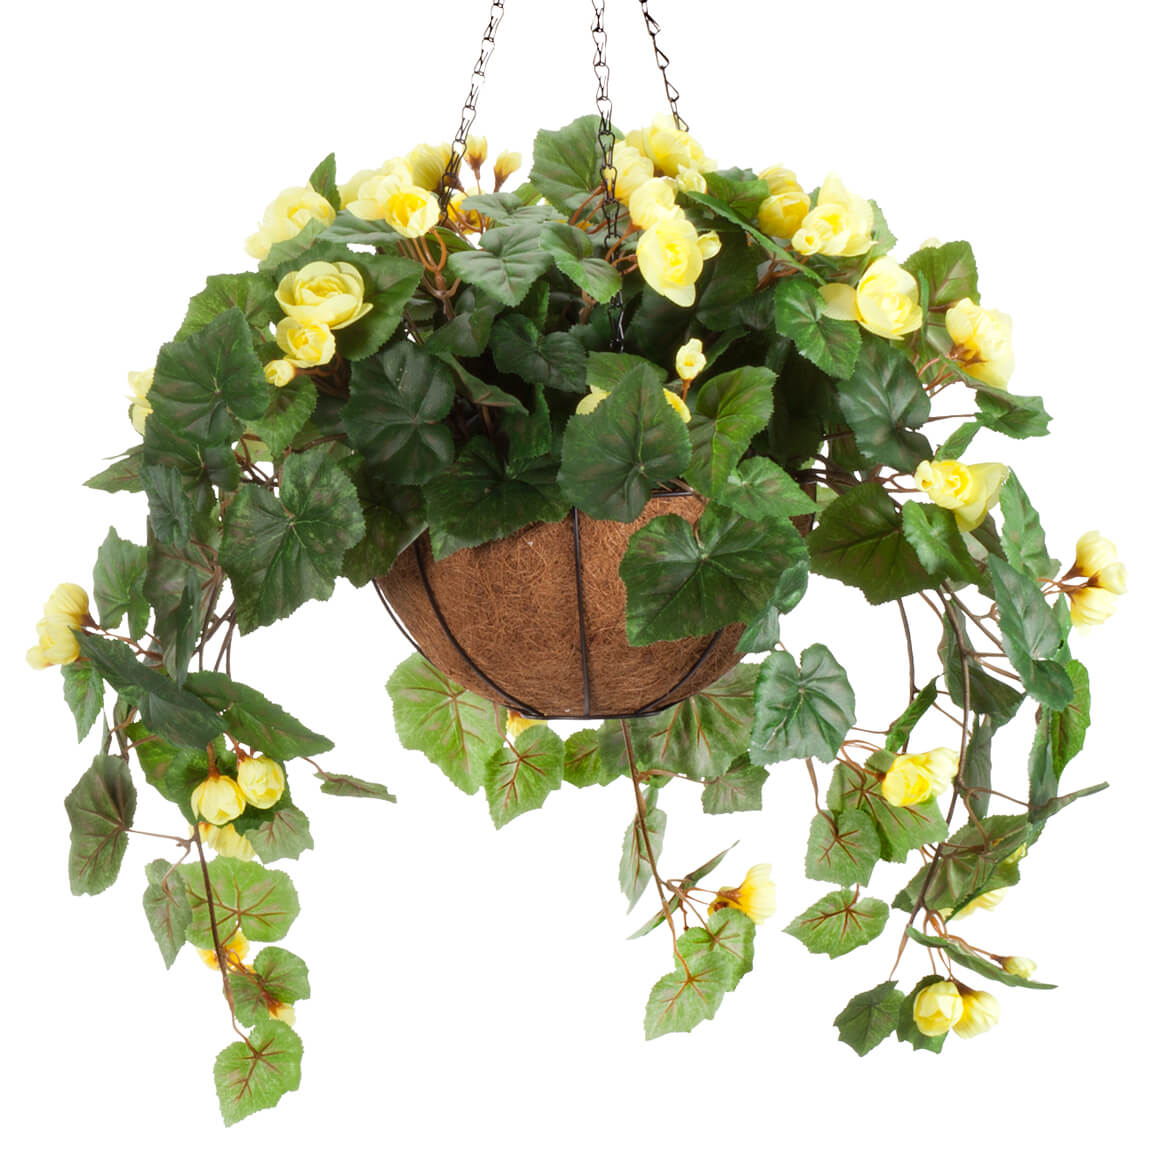 oakridge miles kimball fully assembled artificial begonia hanging basket 10 diameter and 18 chain yellow polyester plastic flowers in metal and